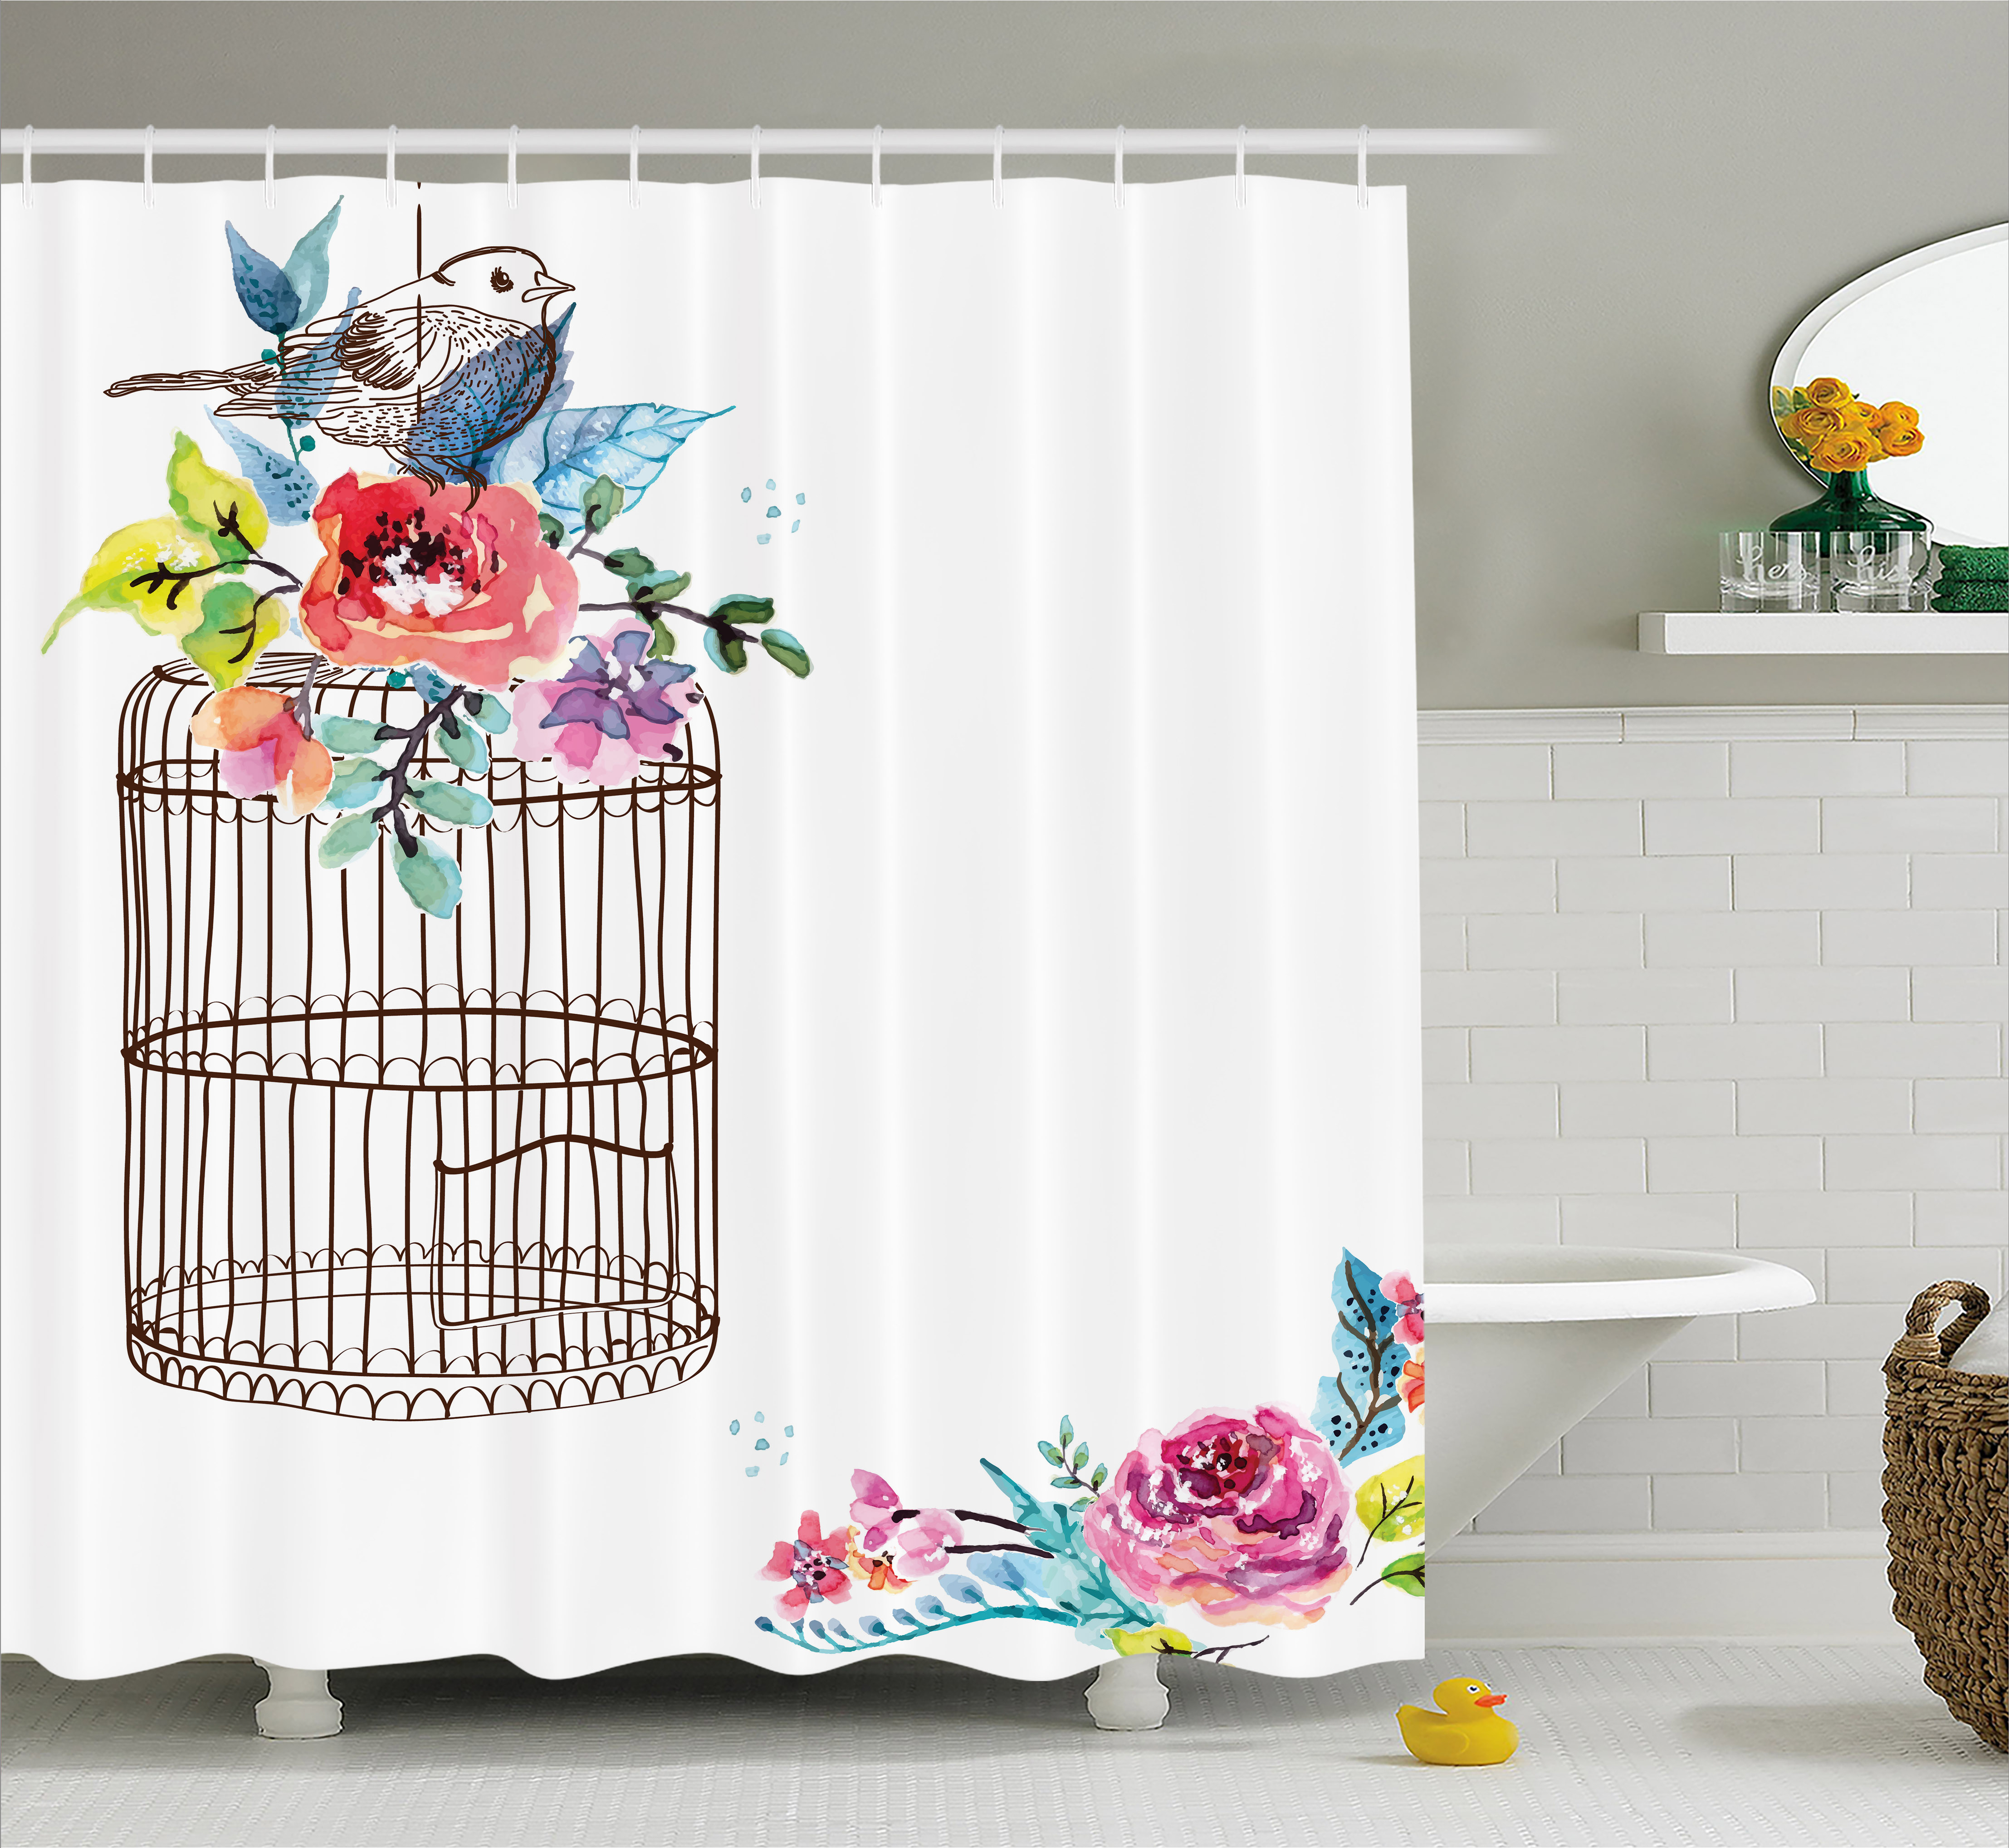 Watercolor Shower Curtain Sketch Of A Bird On An Empty Cage With Colorful Flowers Nature Imagery Fabric Bathroom Set Hooks 69W X 70L Inches